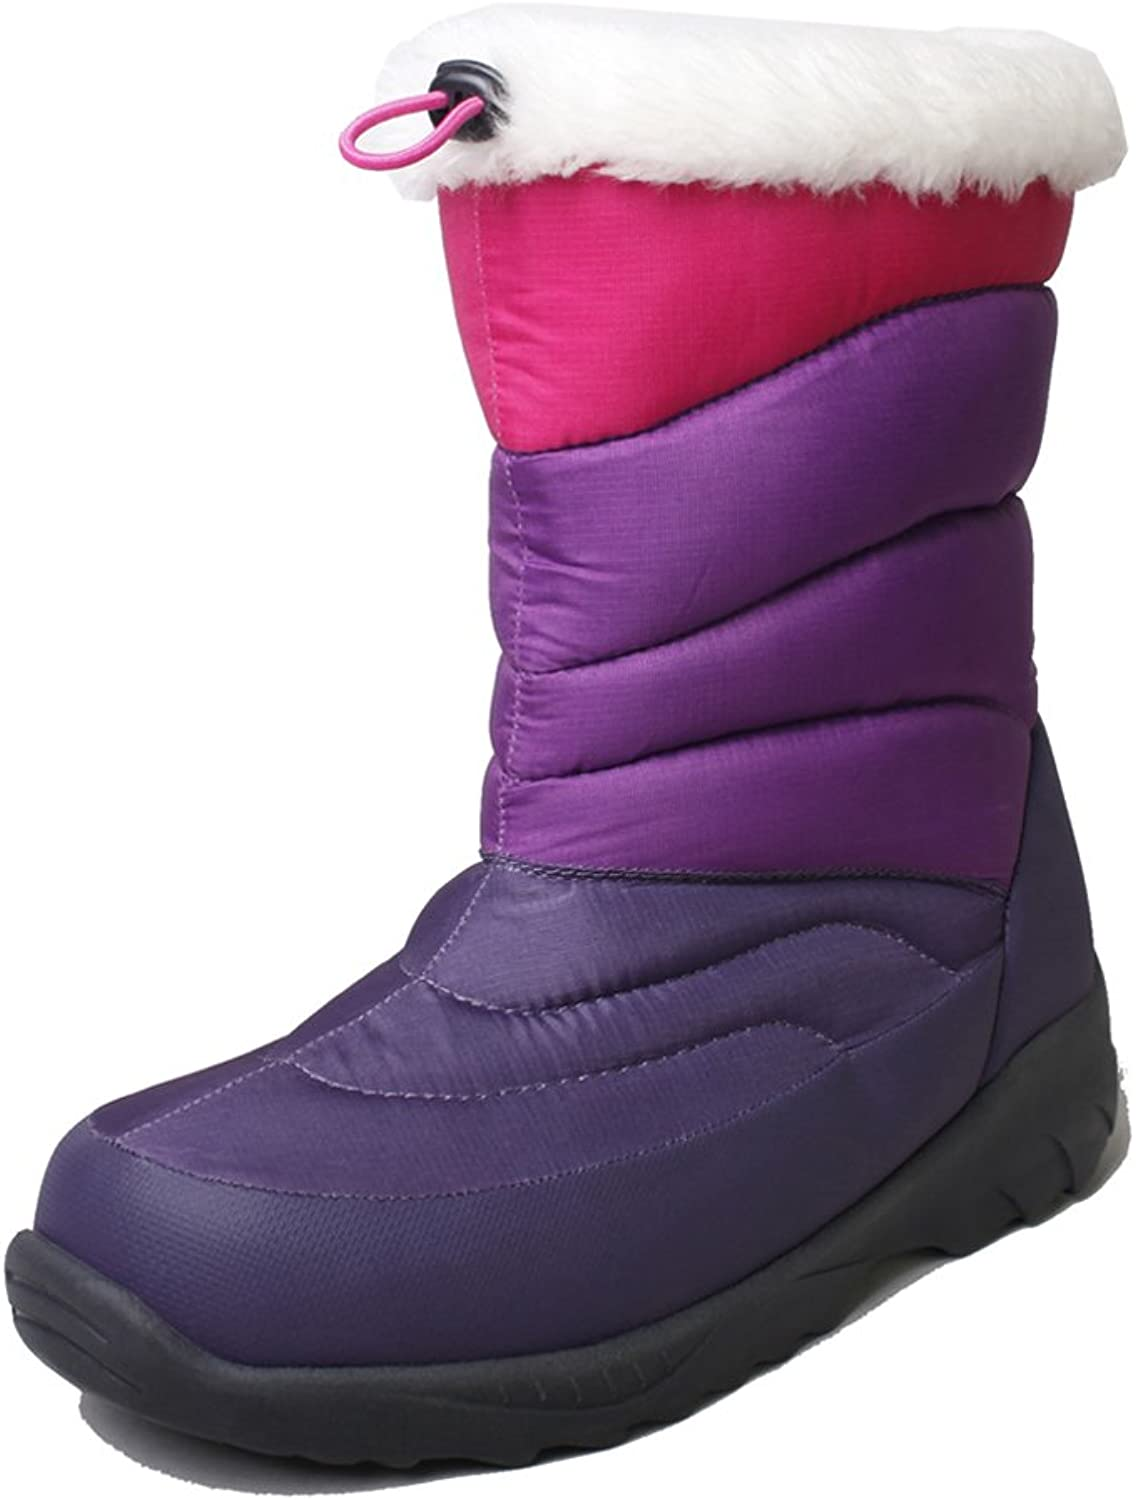 Tntn Outdoor Women's Ladies Casual Duck's Down Warm 3M Thinsulate Winter Snowboots Waterproof shoes Fashion